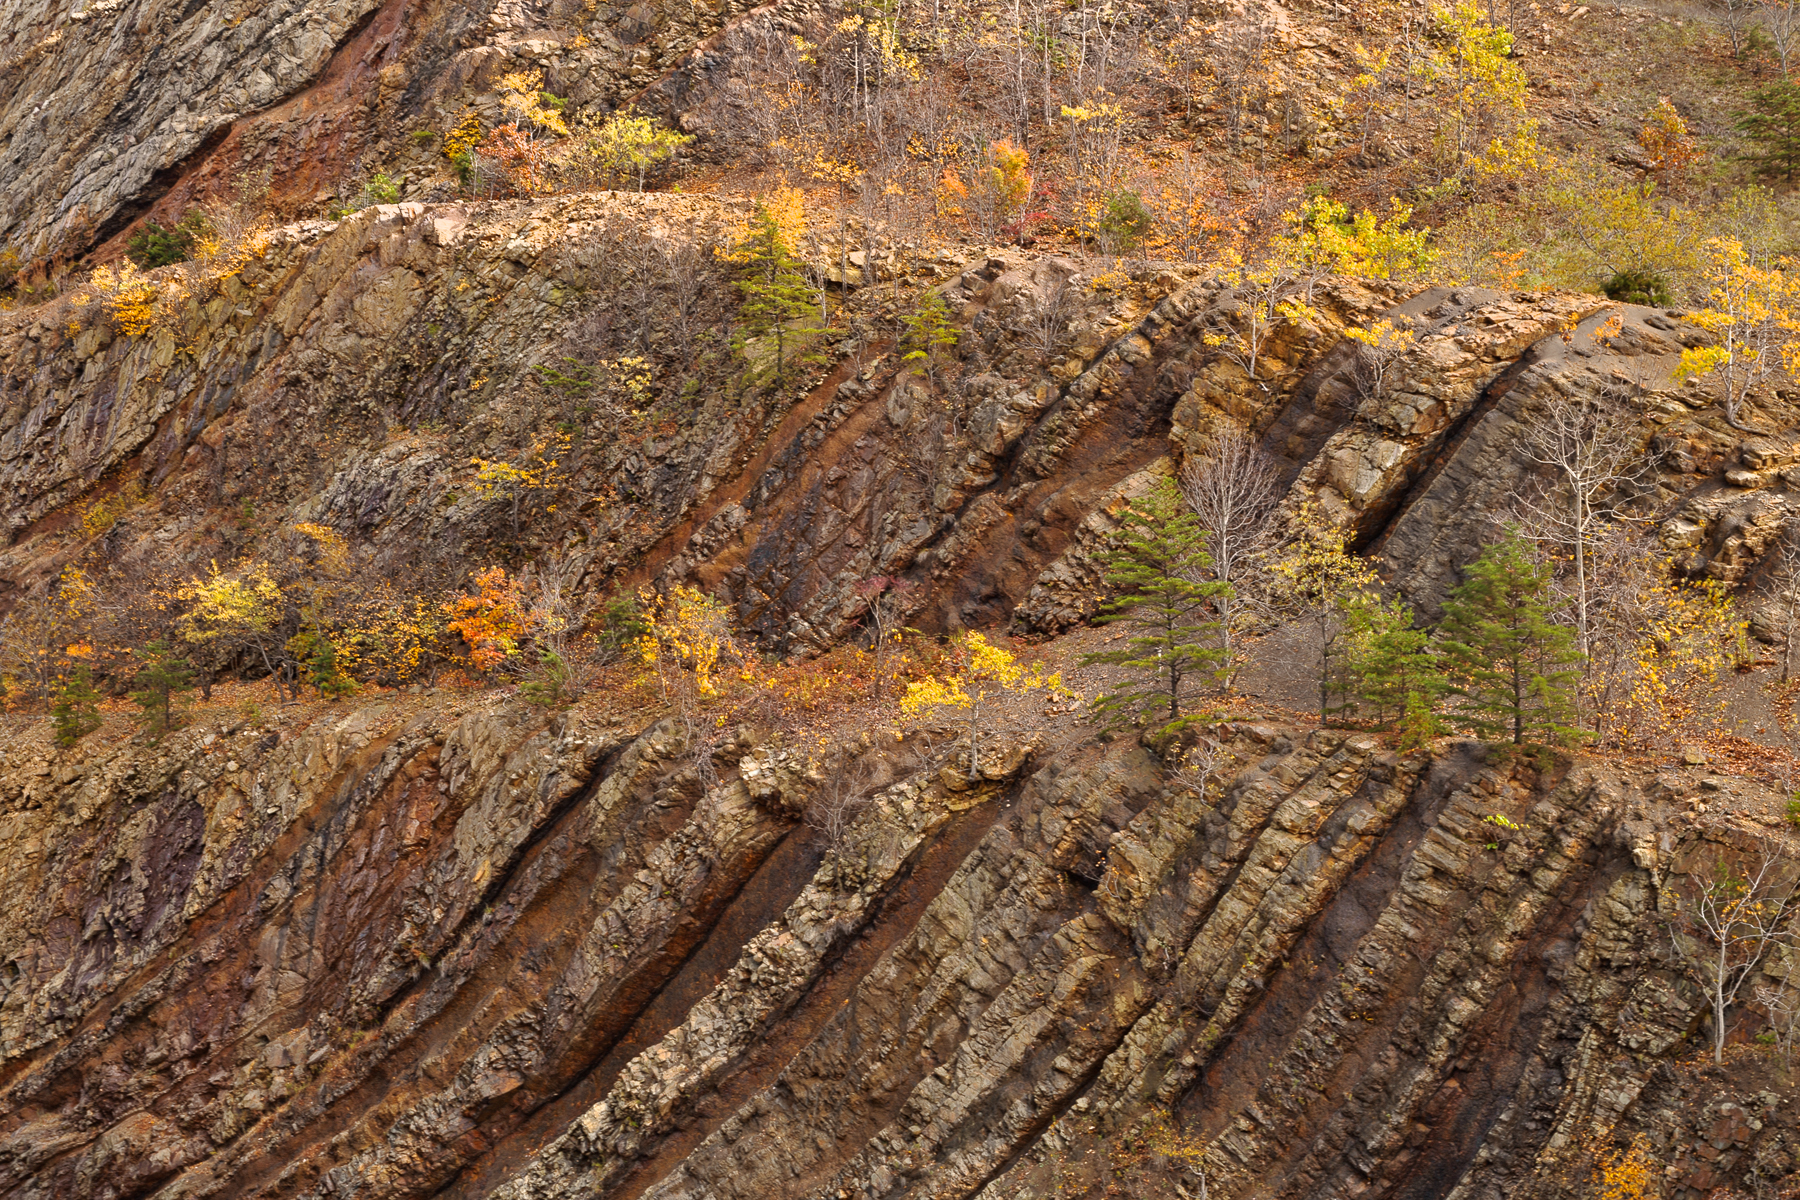 Sideling hill close-up - hdr texture photo